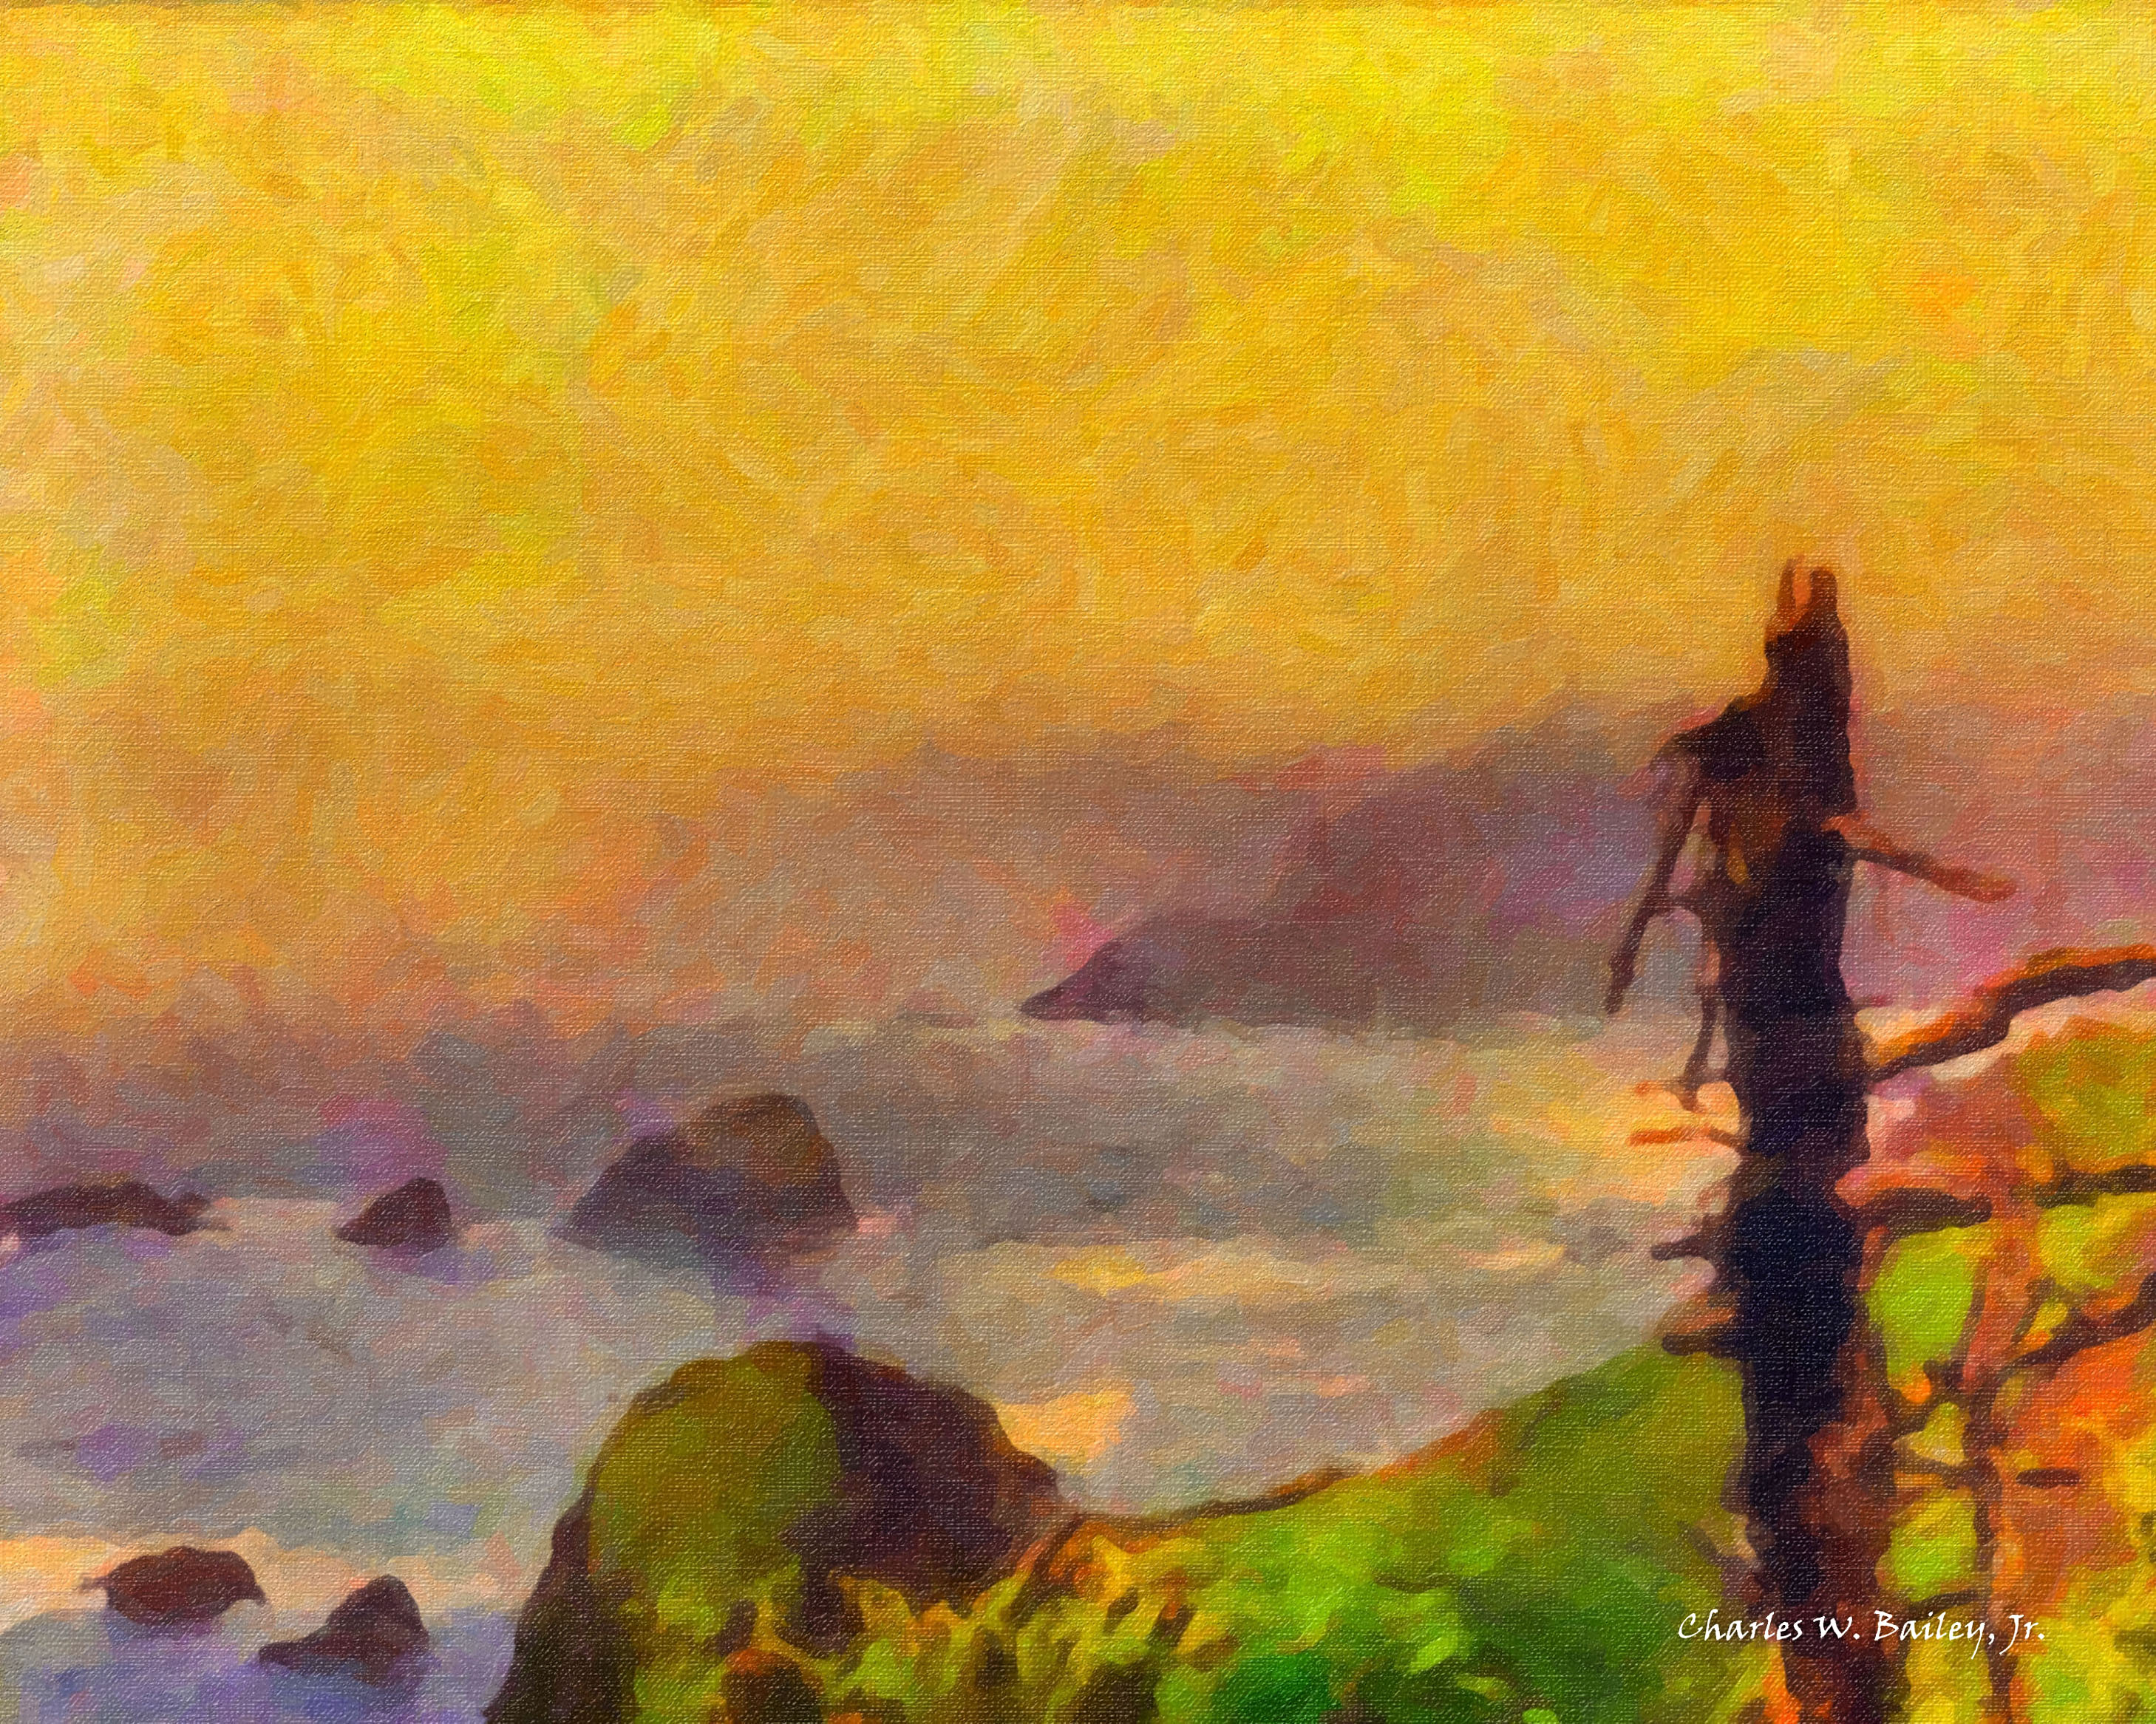 Digital Oil Painting of the Coastline Near Cannon Beach, Oregon